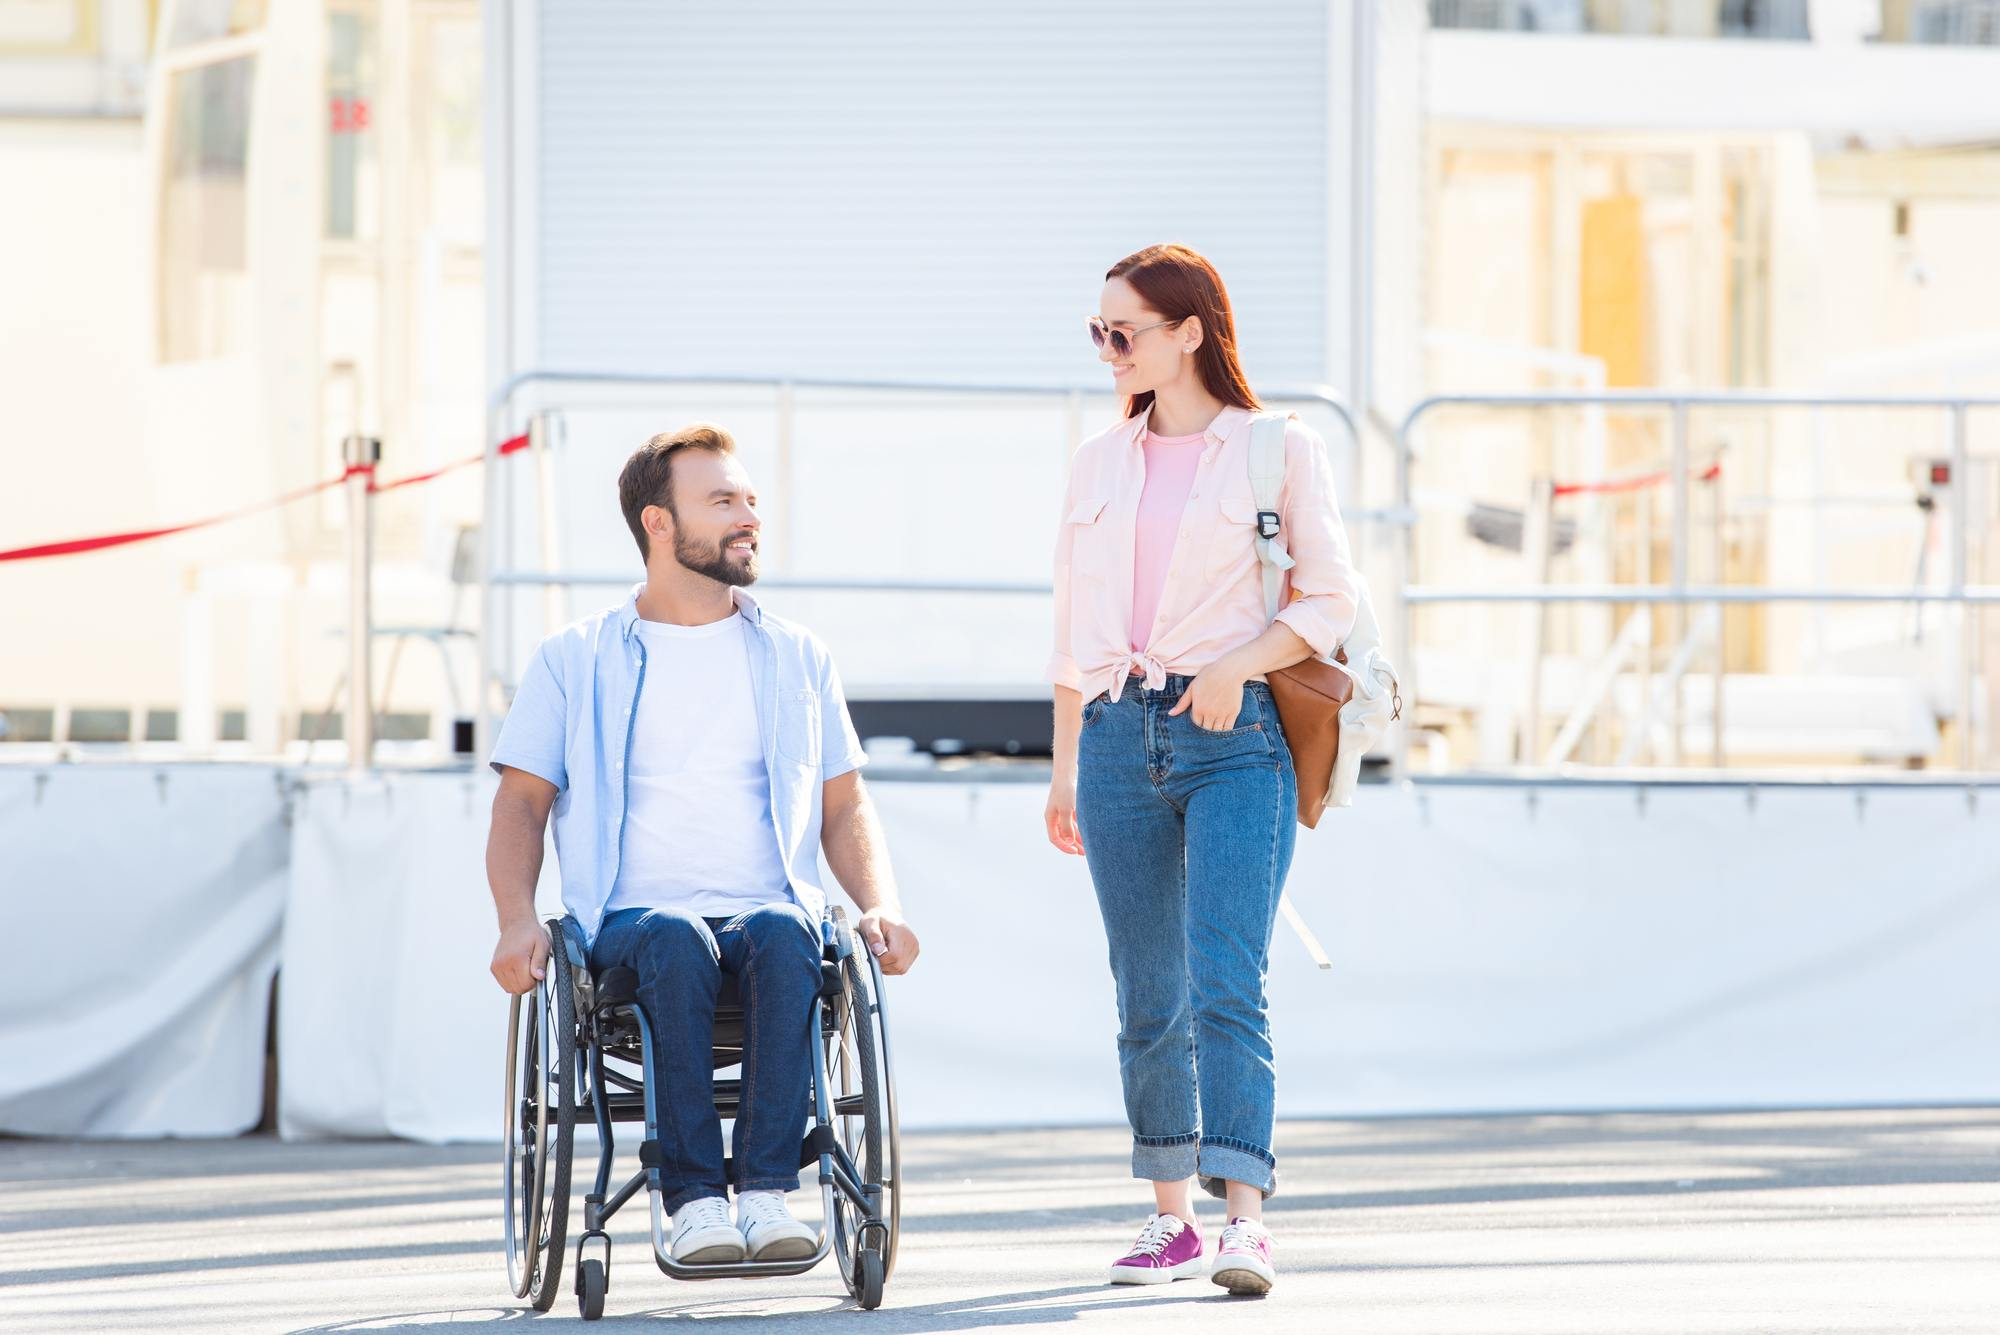 Man in wheelchair with standing woman